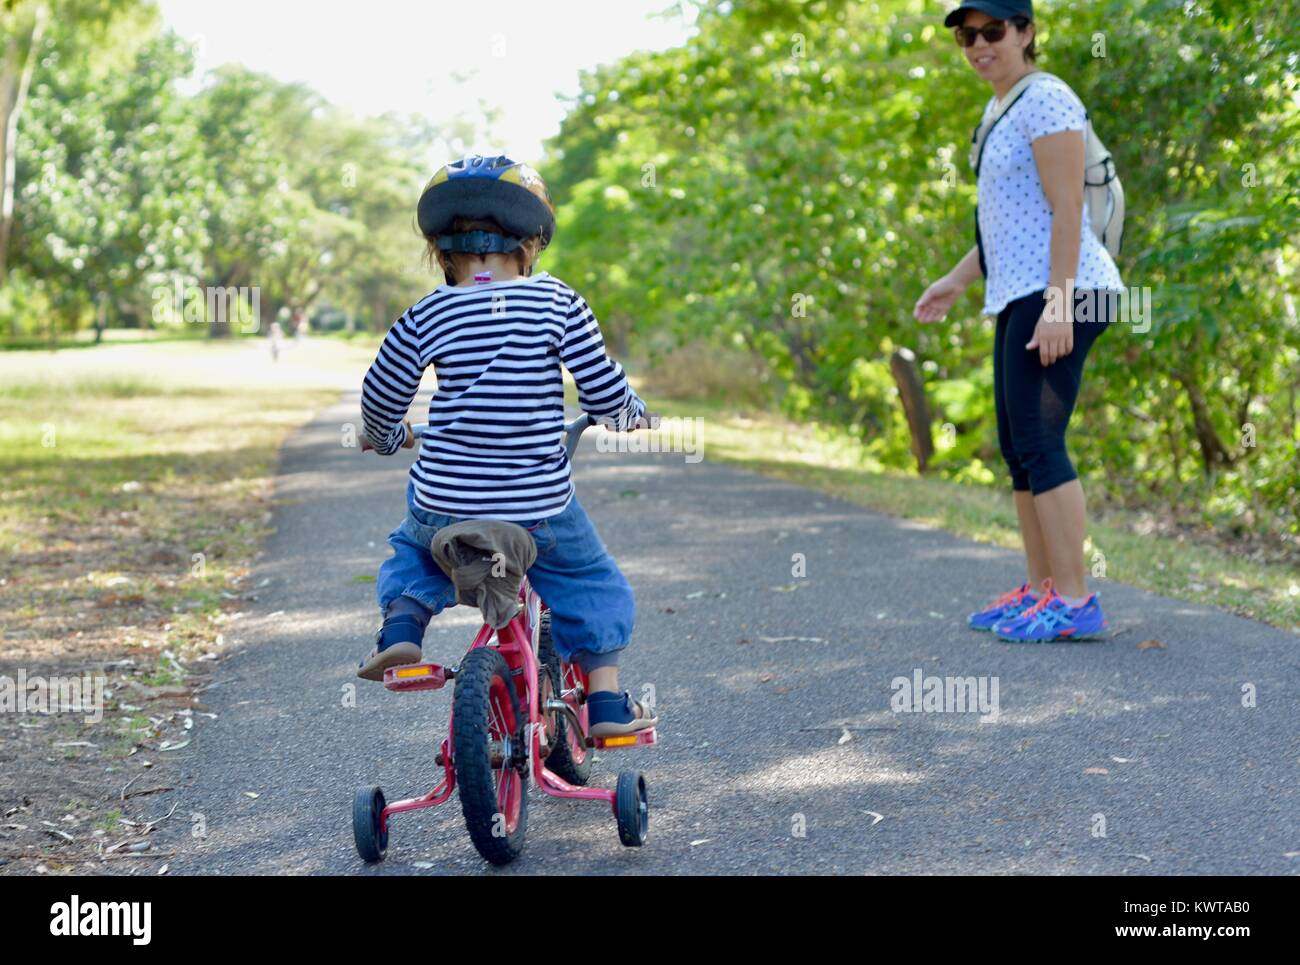 Mother walks with small child riding a bicycle with training wheels along a path, Townsville, Queensland, Australia - Stock Image